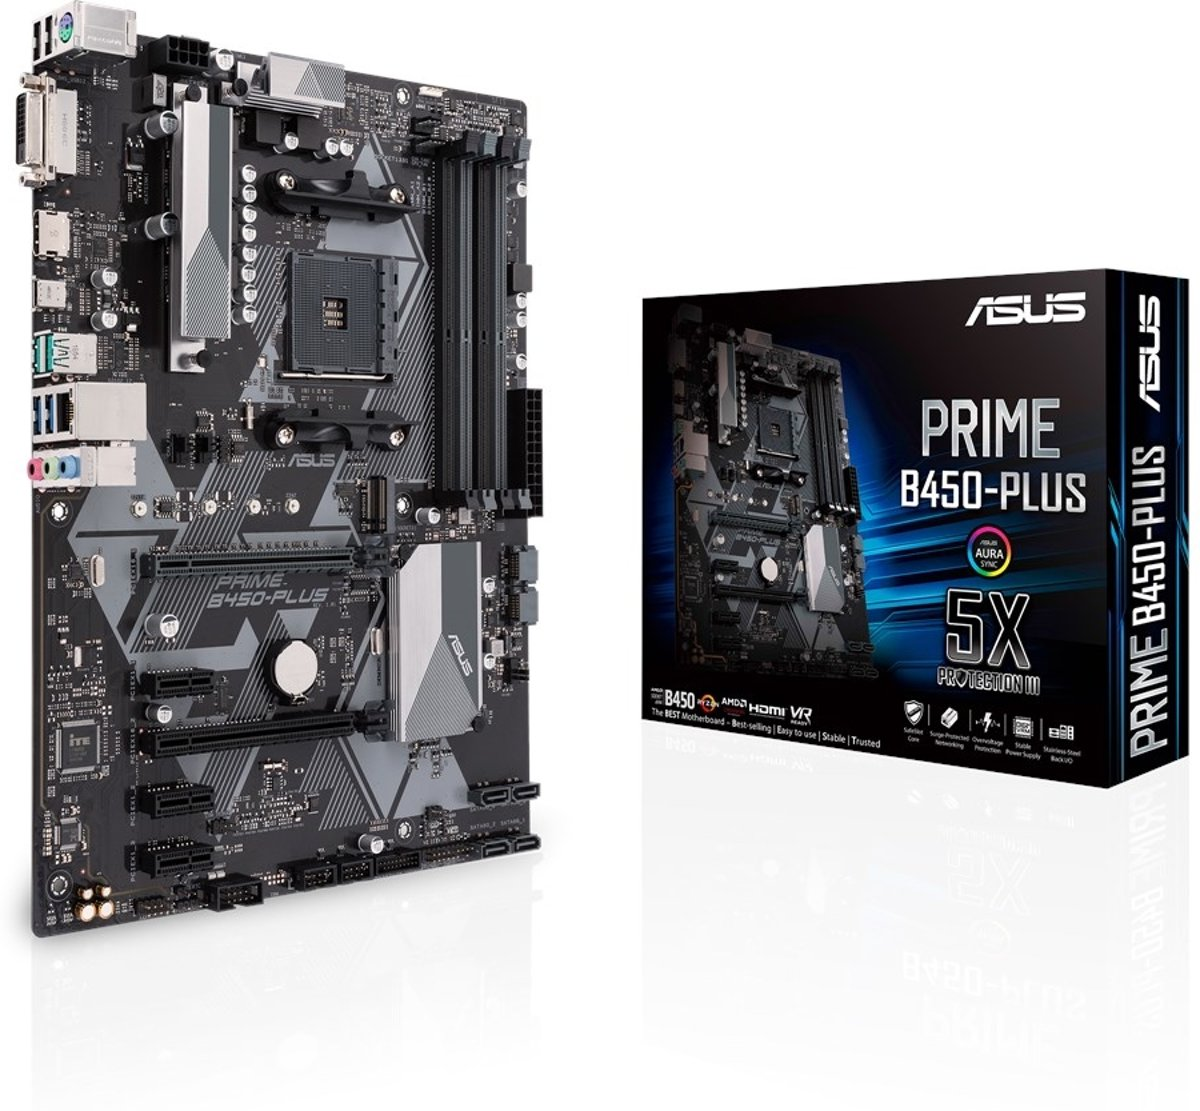 PRIME B450-PLUS AMD B450 Socket AM4 ATX